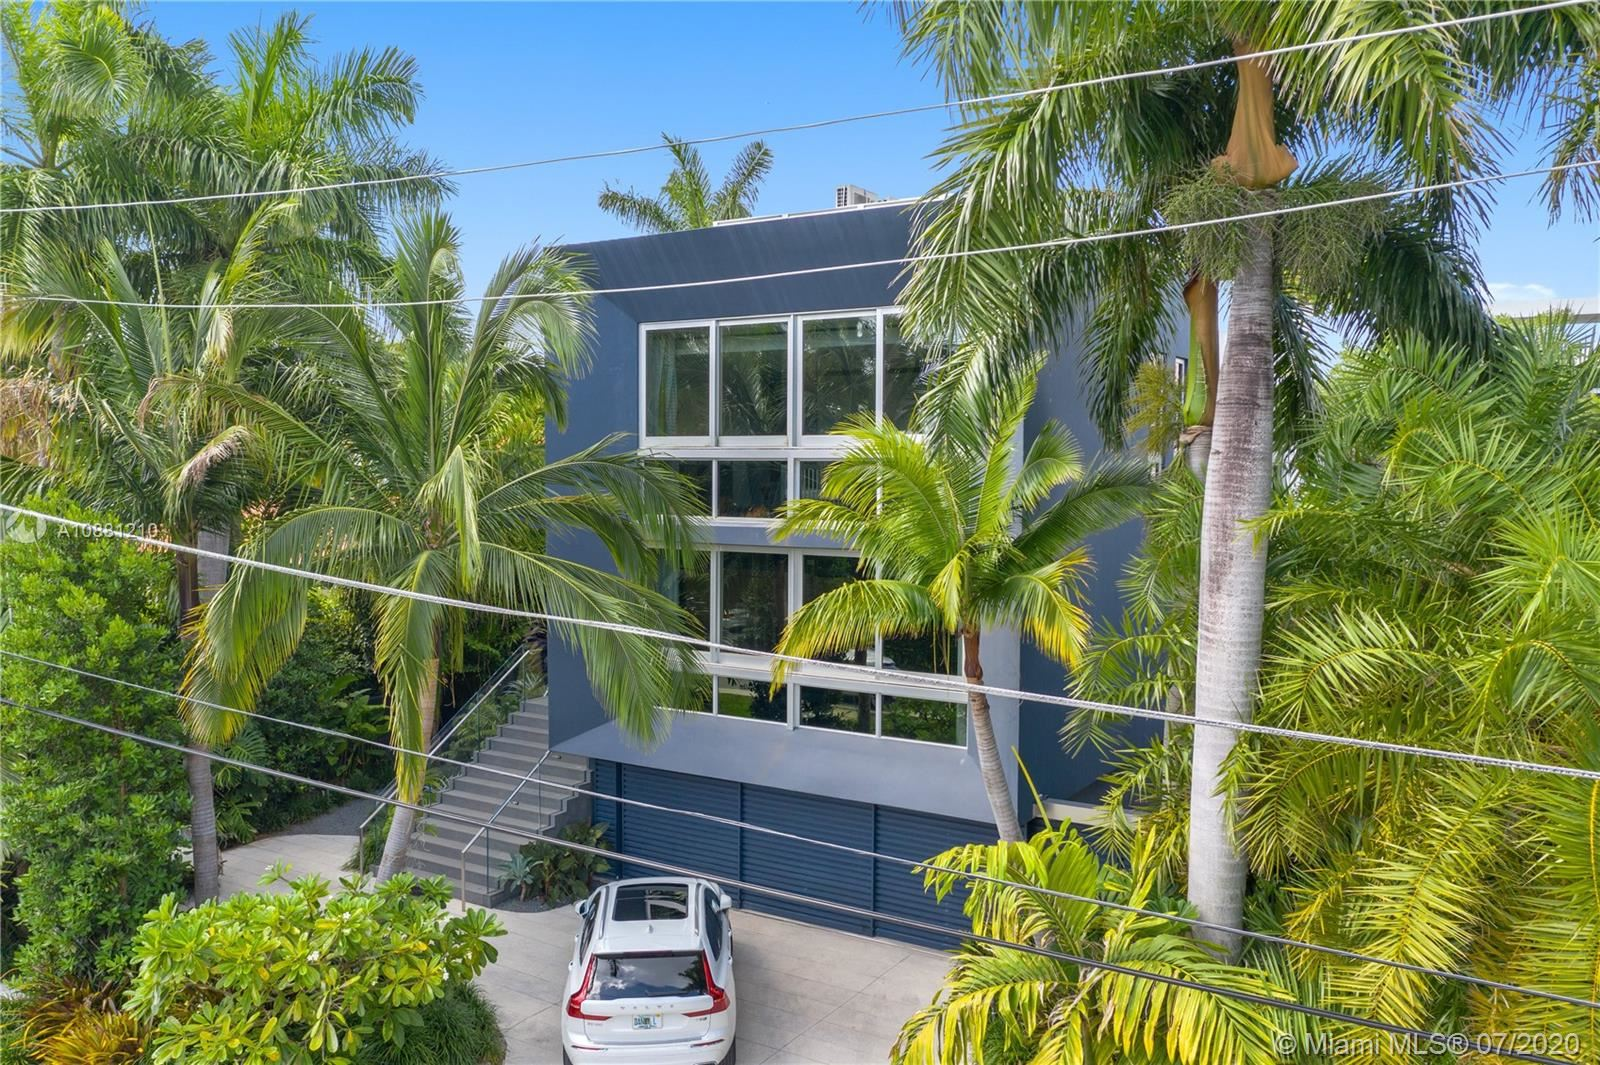 Photo 43 of Listing MLS a10881210 in 370 S Hibiscus Dr Miami Beach FL 33139